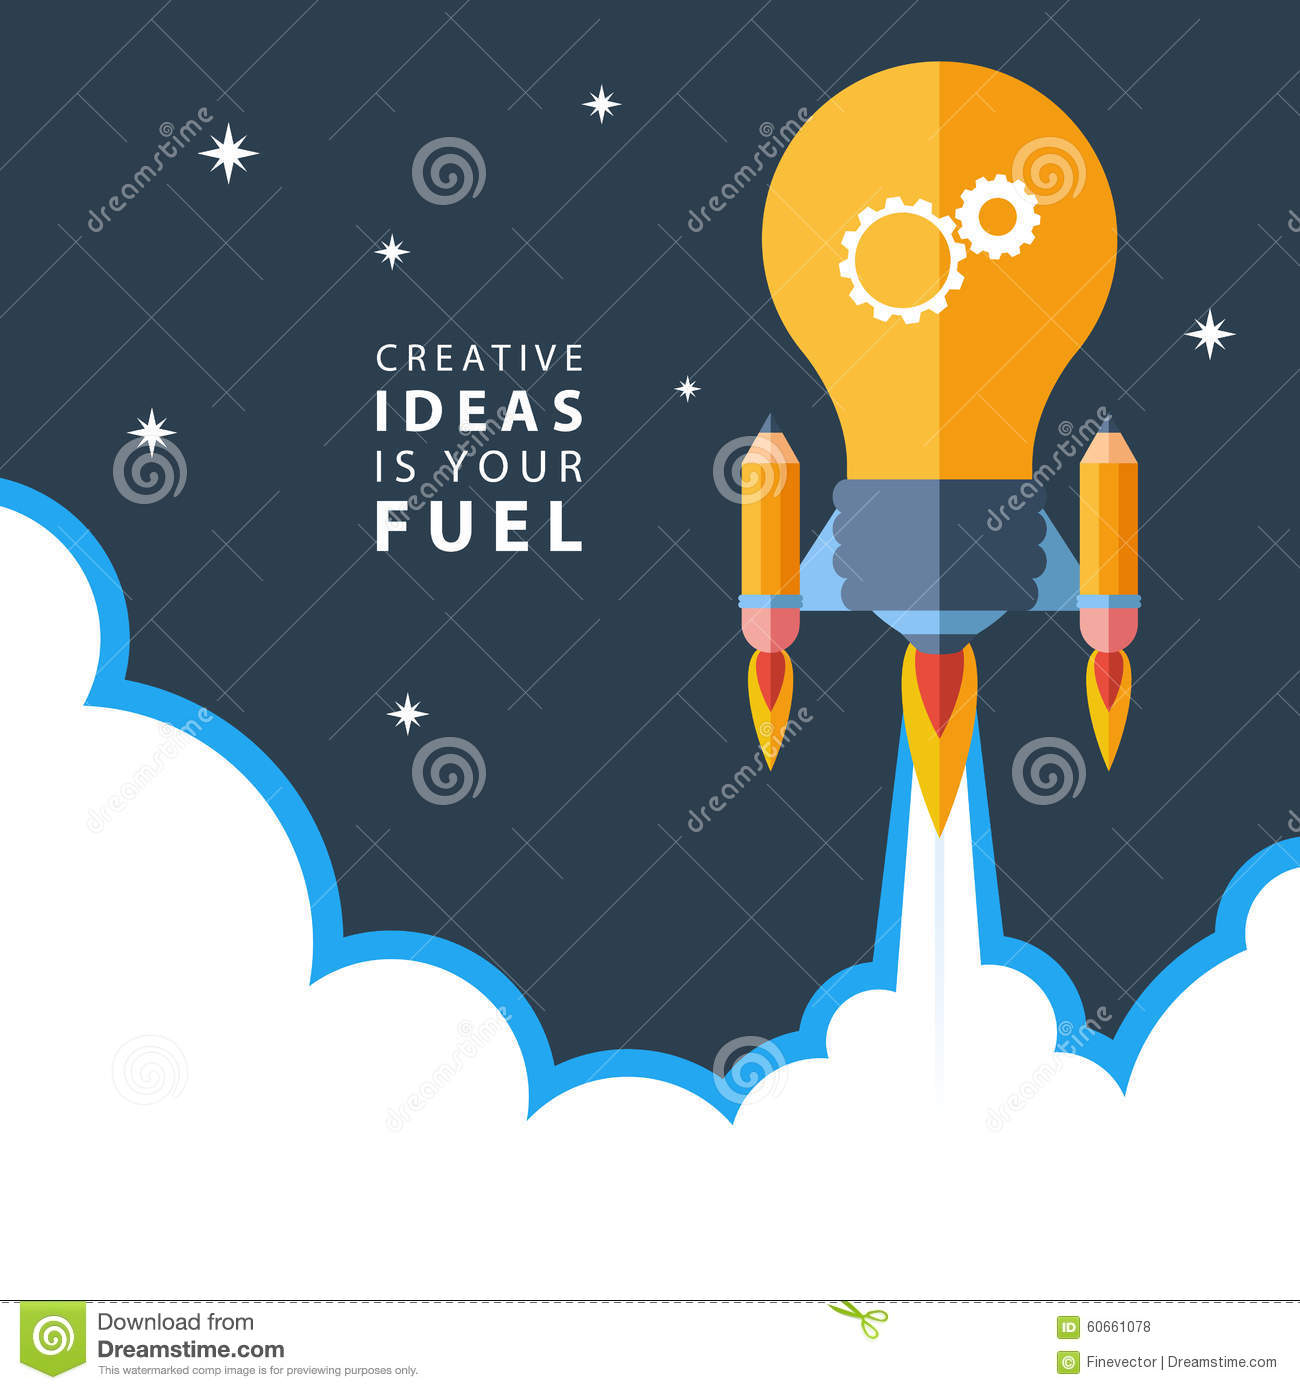 Creative ideas is your fuel flat design colorful vector for New flat design ideas